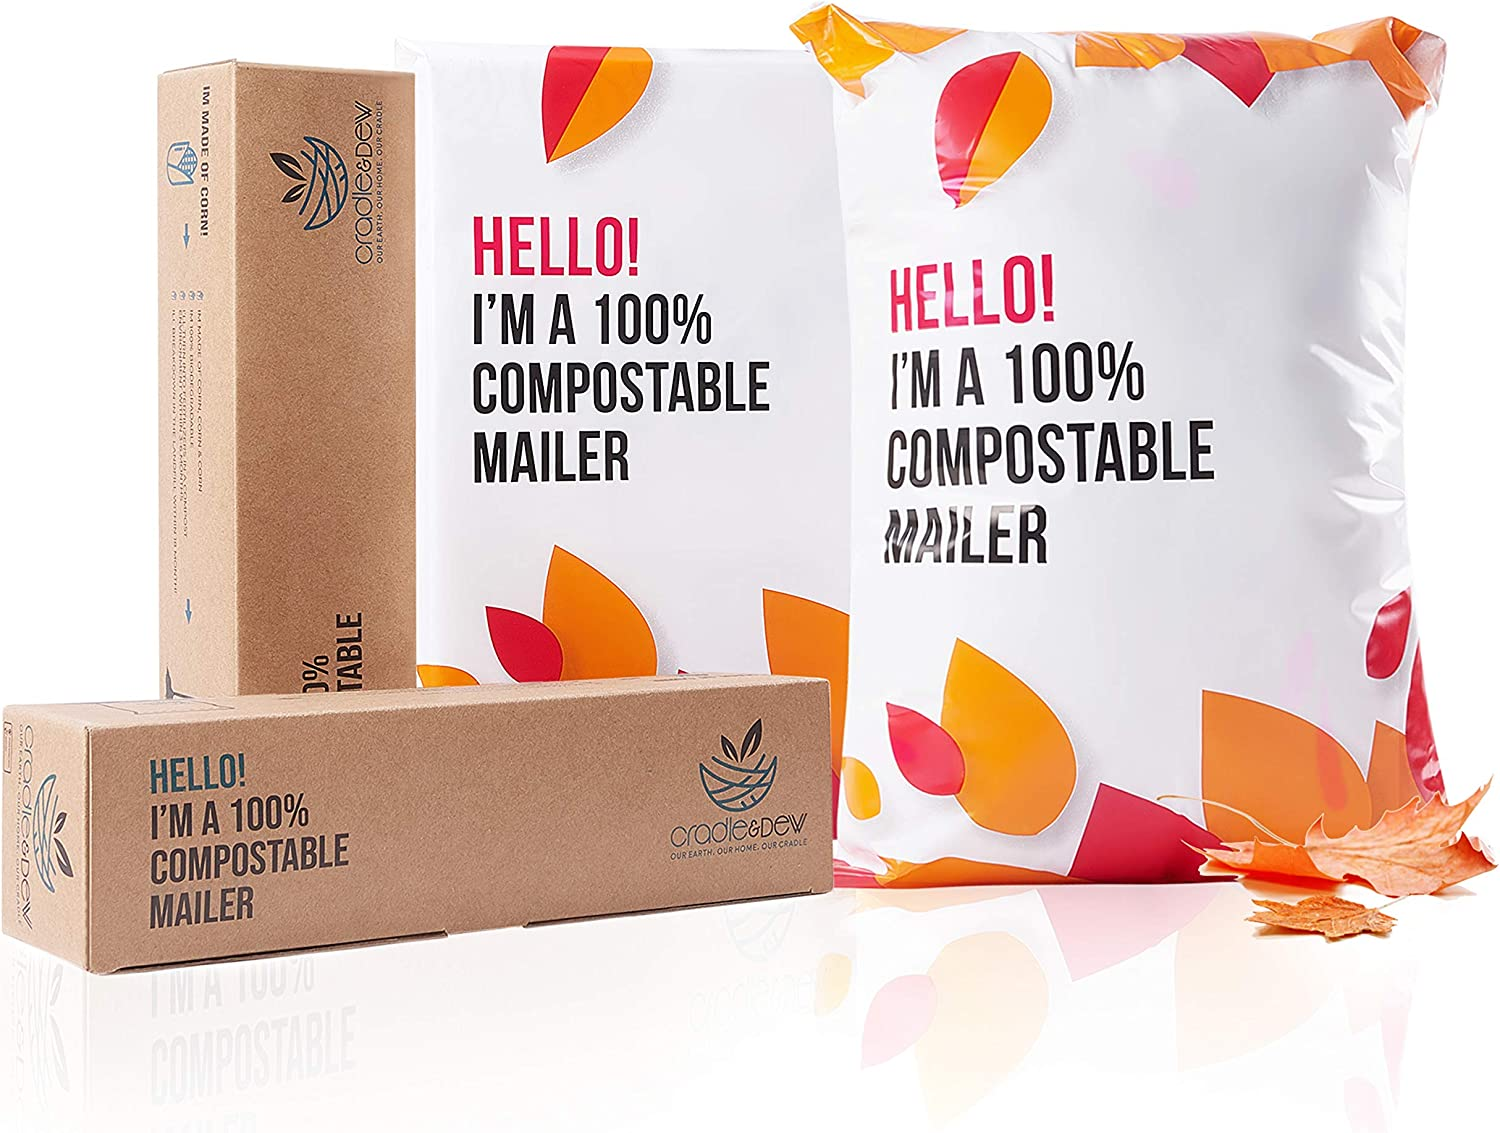 Complete Free Shipping 100% Compostable Biodegradable Mailers - Max 41% OFF 13